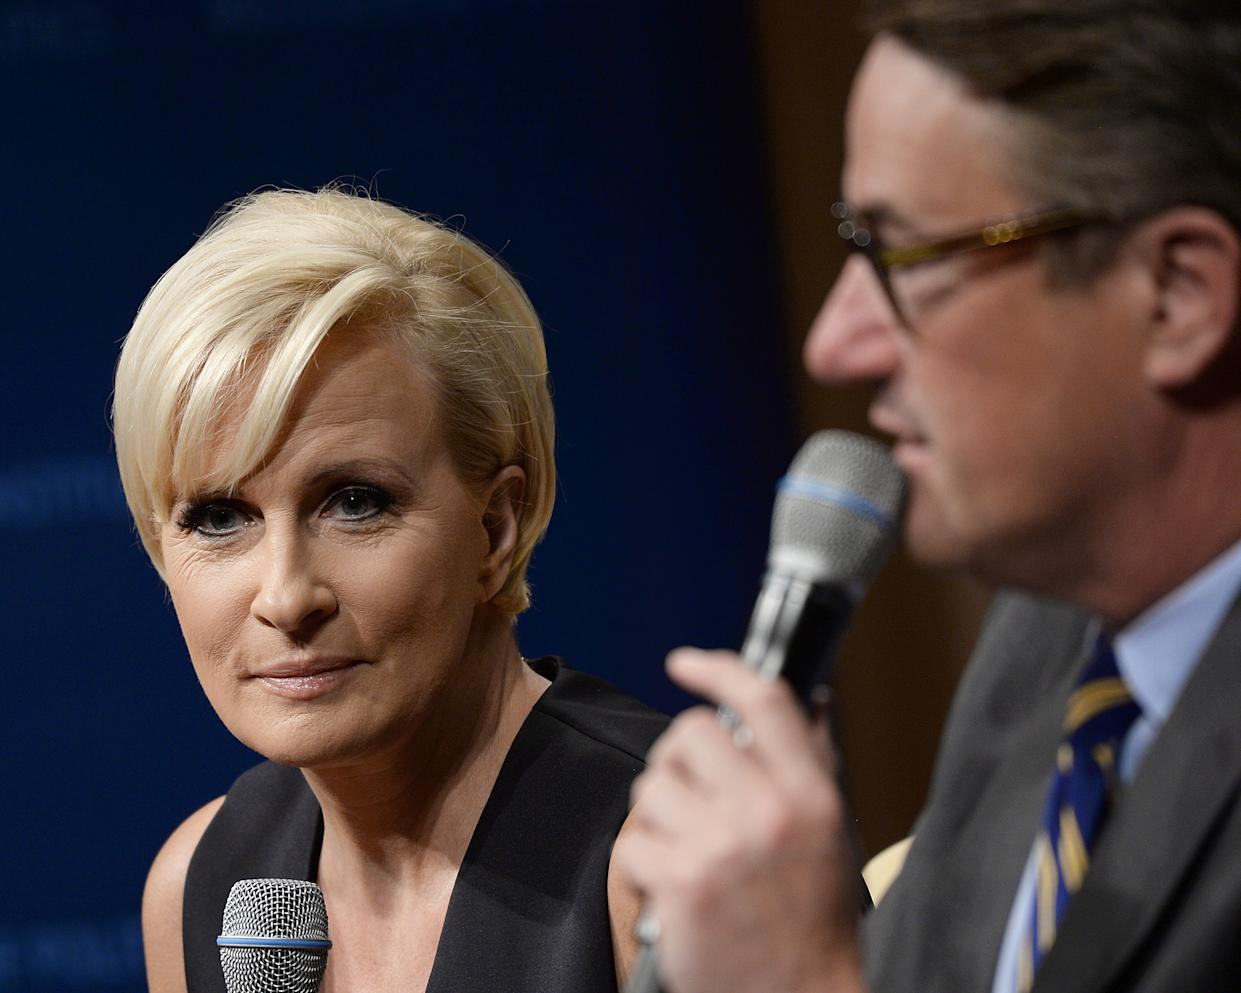 """WASHINGTON, DC - JULY 12:  Joe Scarborough and Mika Brzezinski take part in """"The David Rubenstein Show: Peer-To-Peer Conversations""""at The National Archives on July 12, 2017 in Washington, DC.  (Photo by Shannon Finney/WireImage)"""